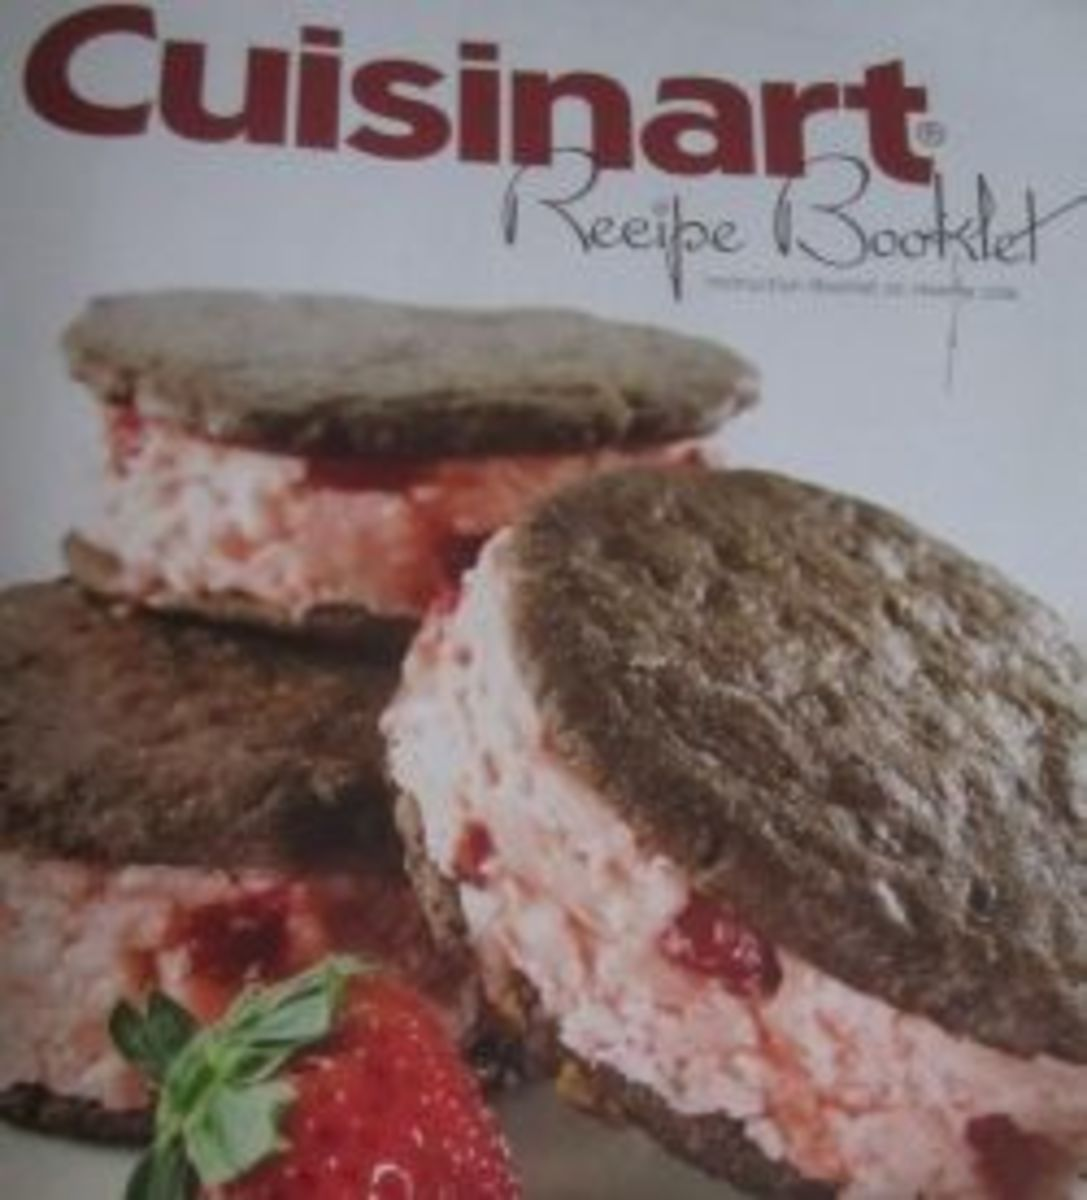 Cuisinart ICE-21 Recipe book